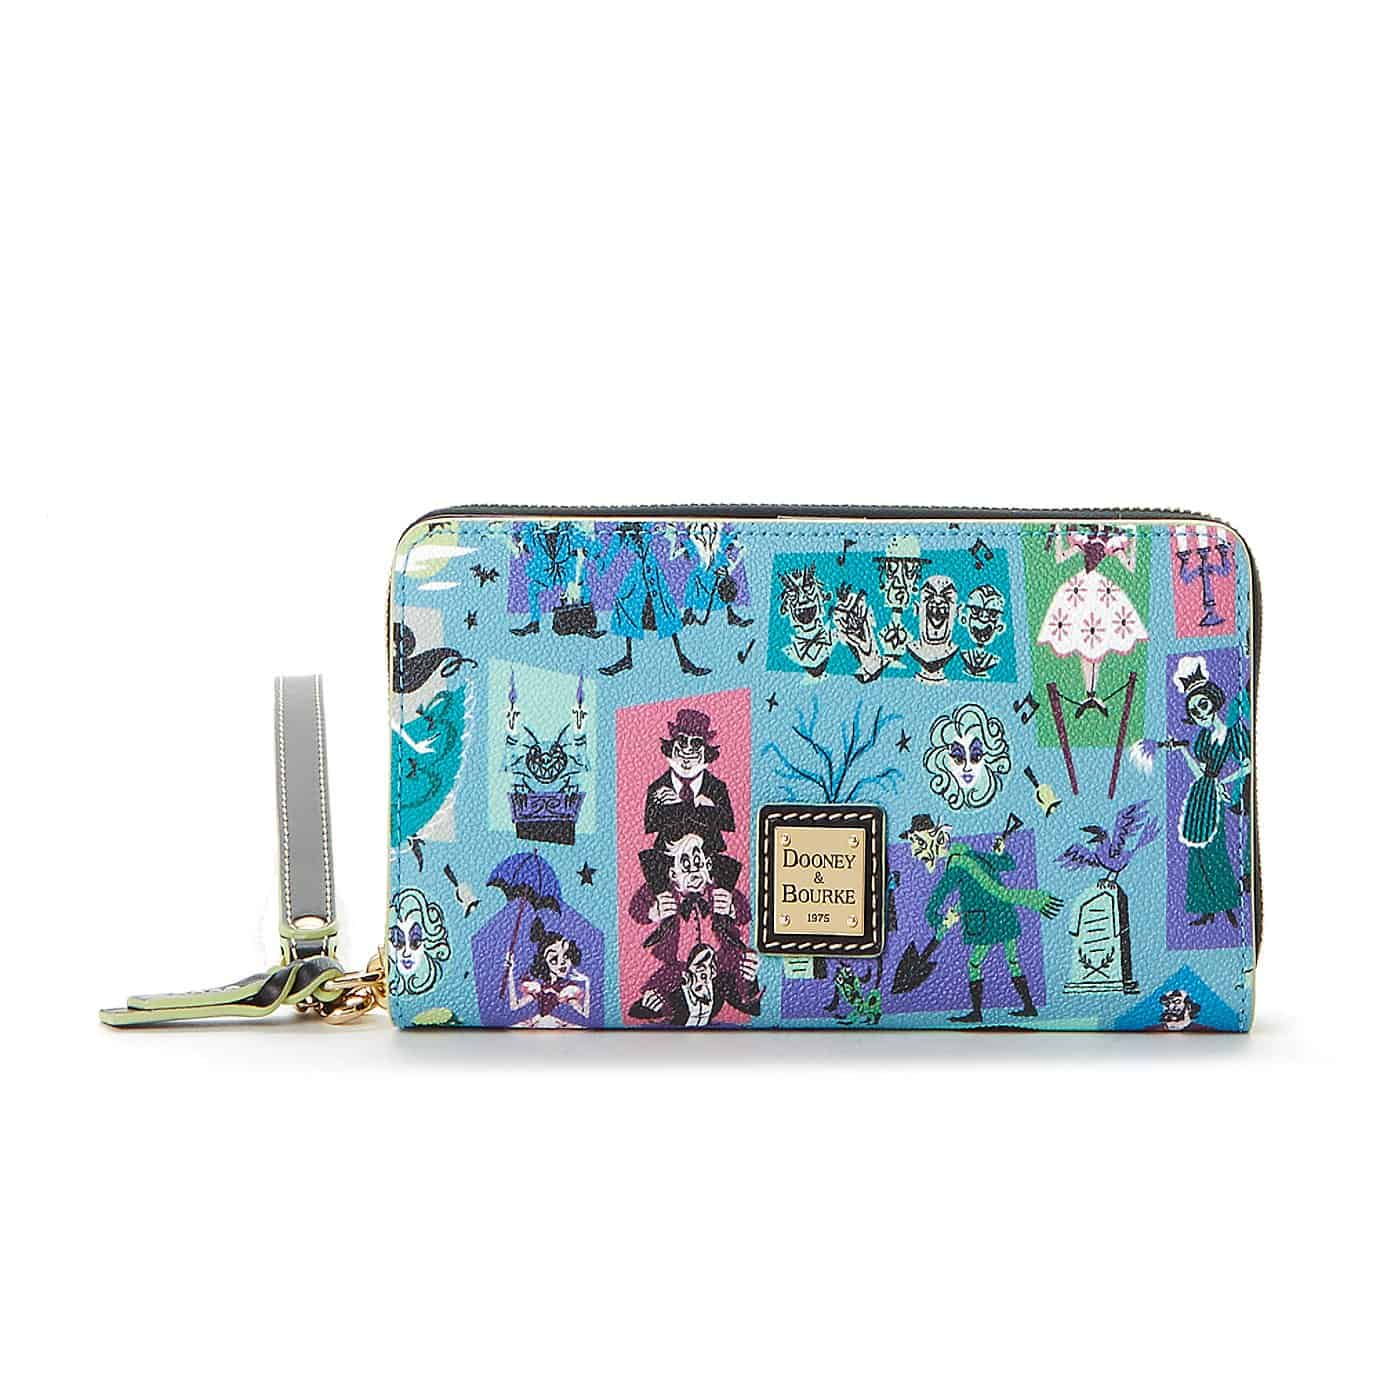 Dooney & Bourke Haunted Mansion 2020 wallet